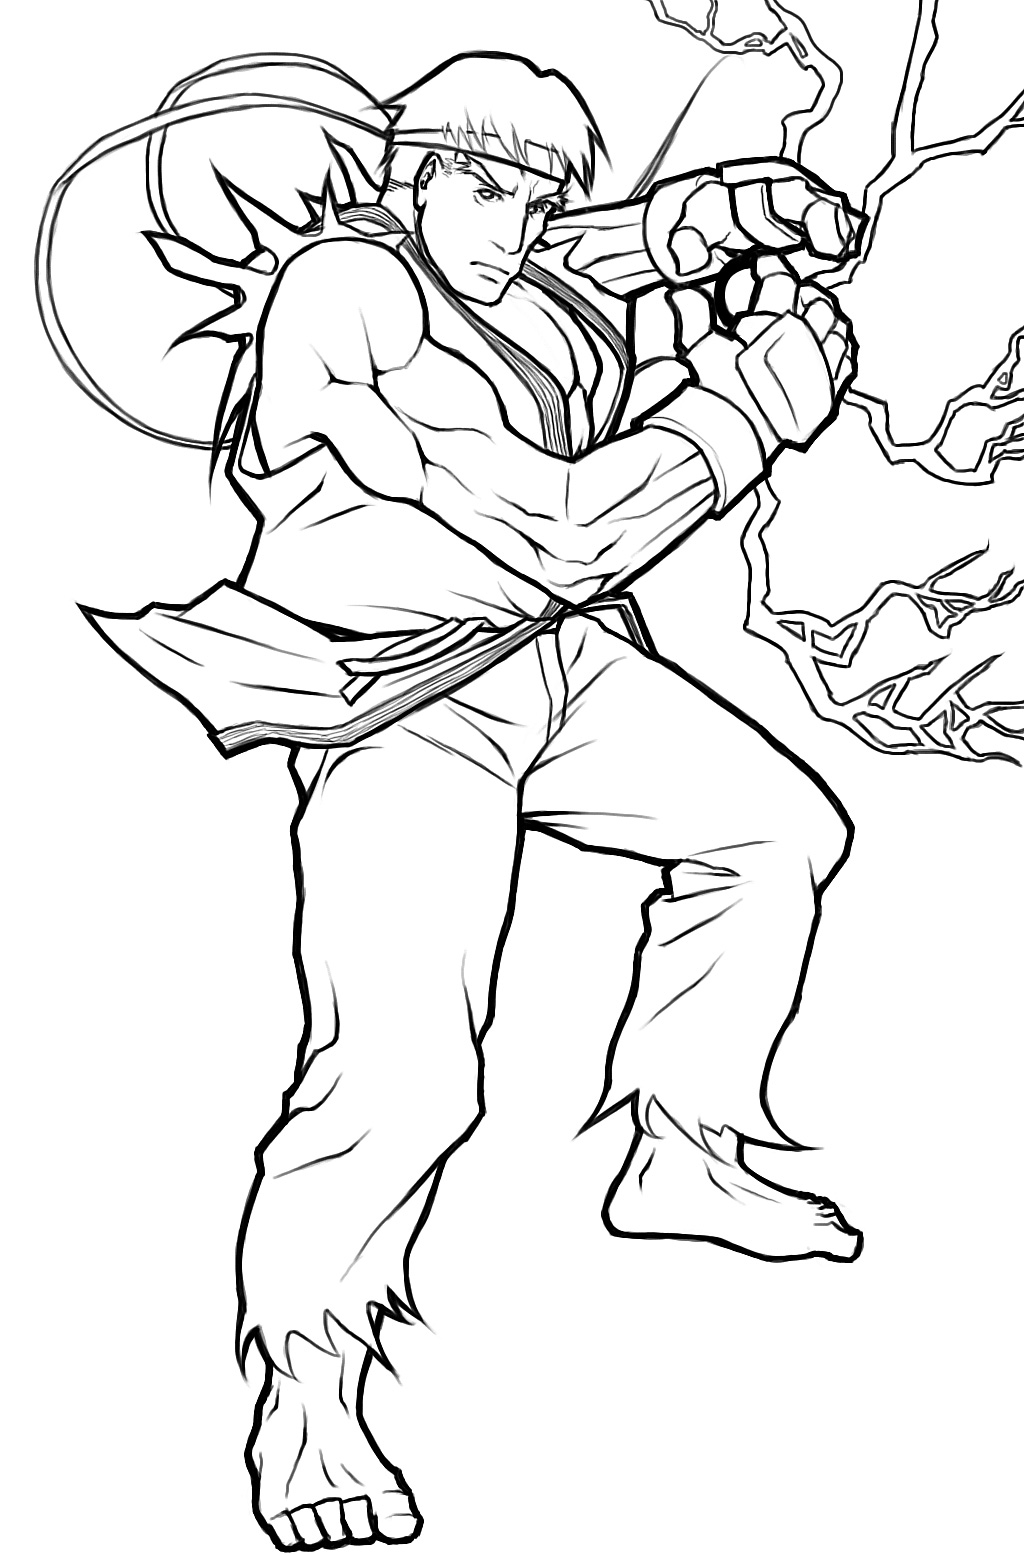 Ryu Lineart By Angelus Mortis On Newgrounds